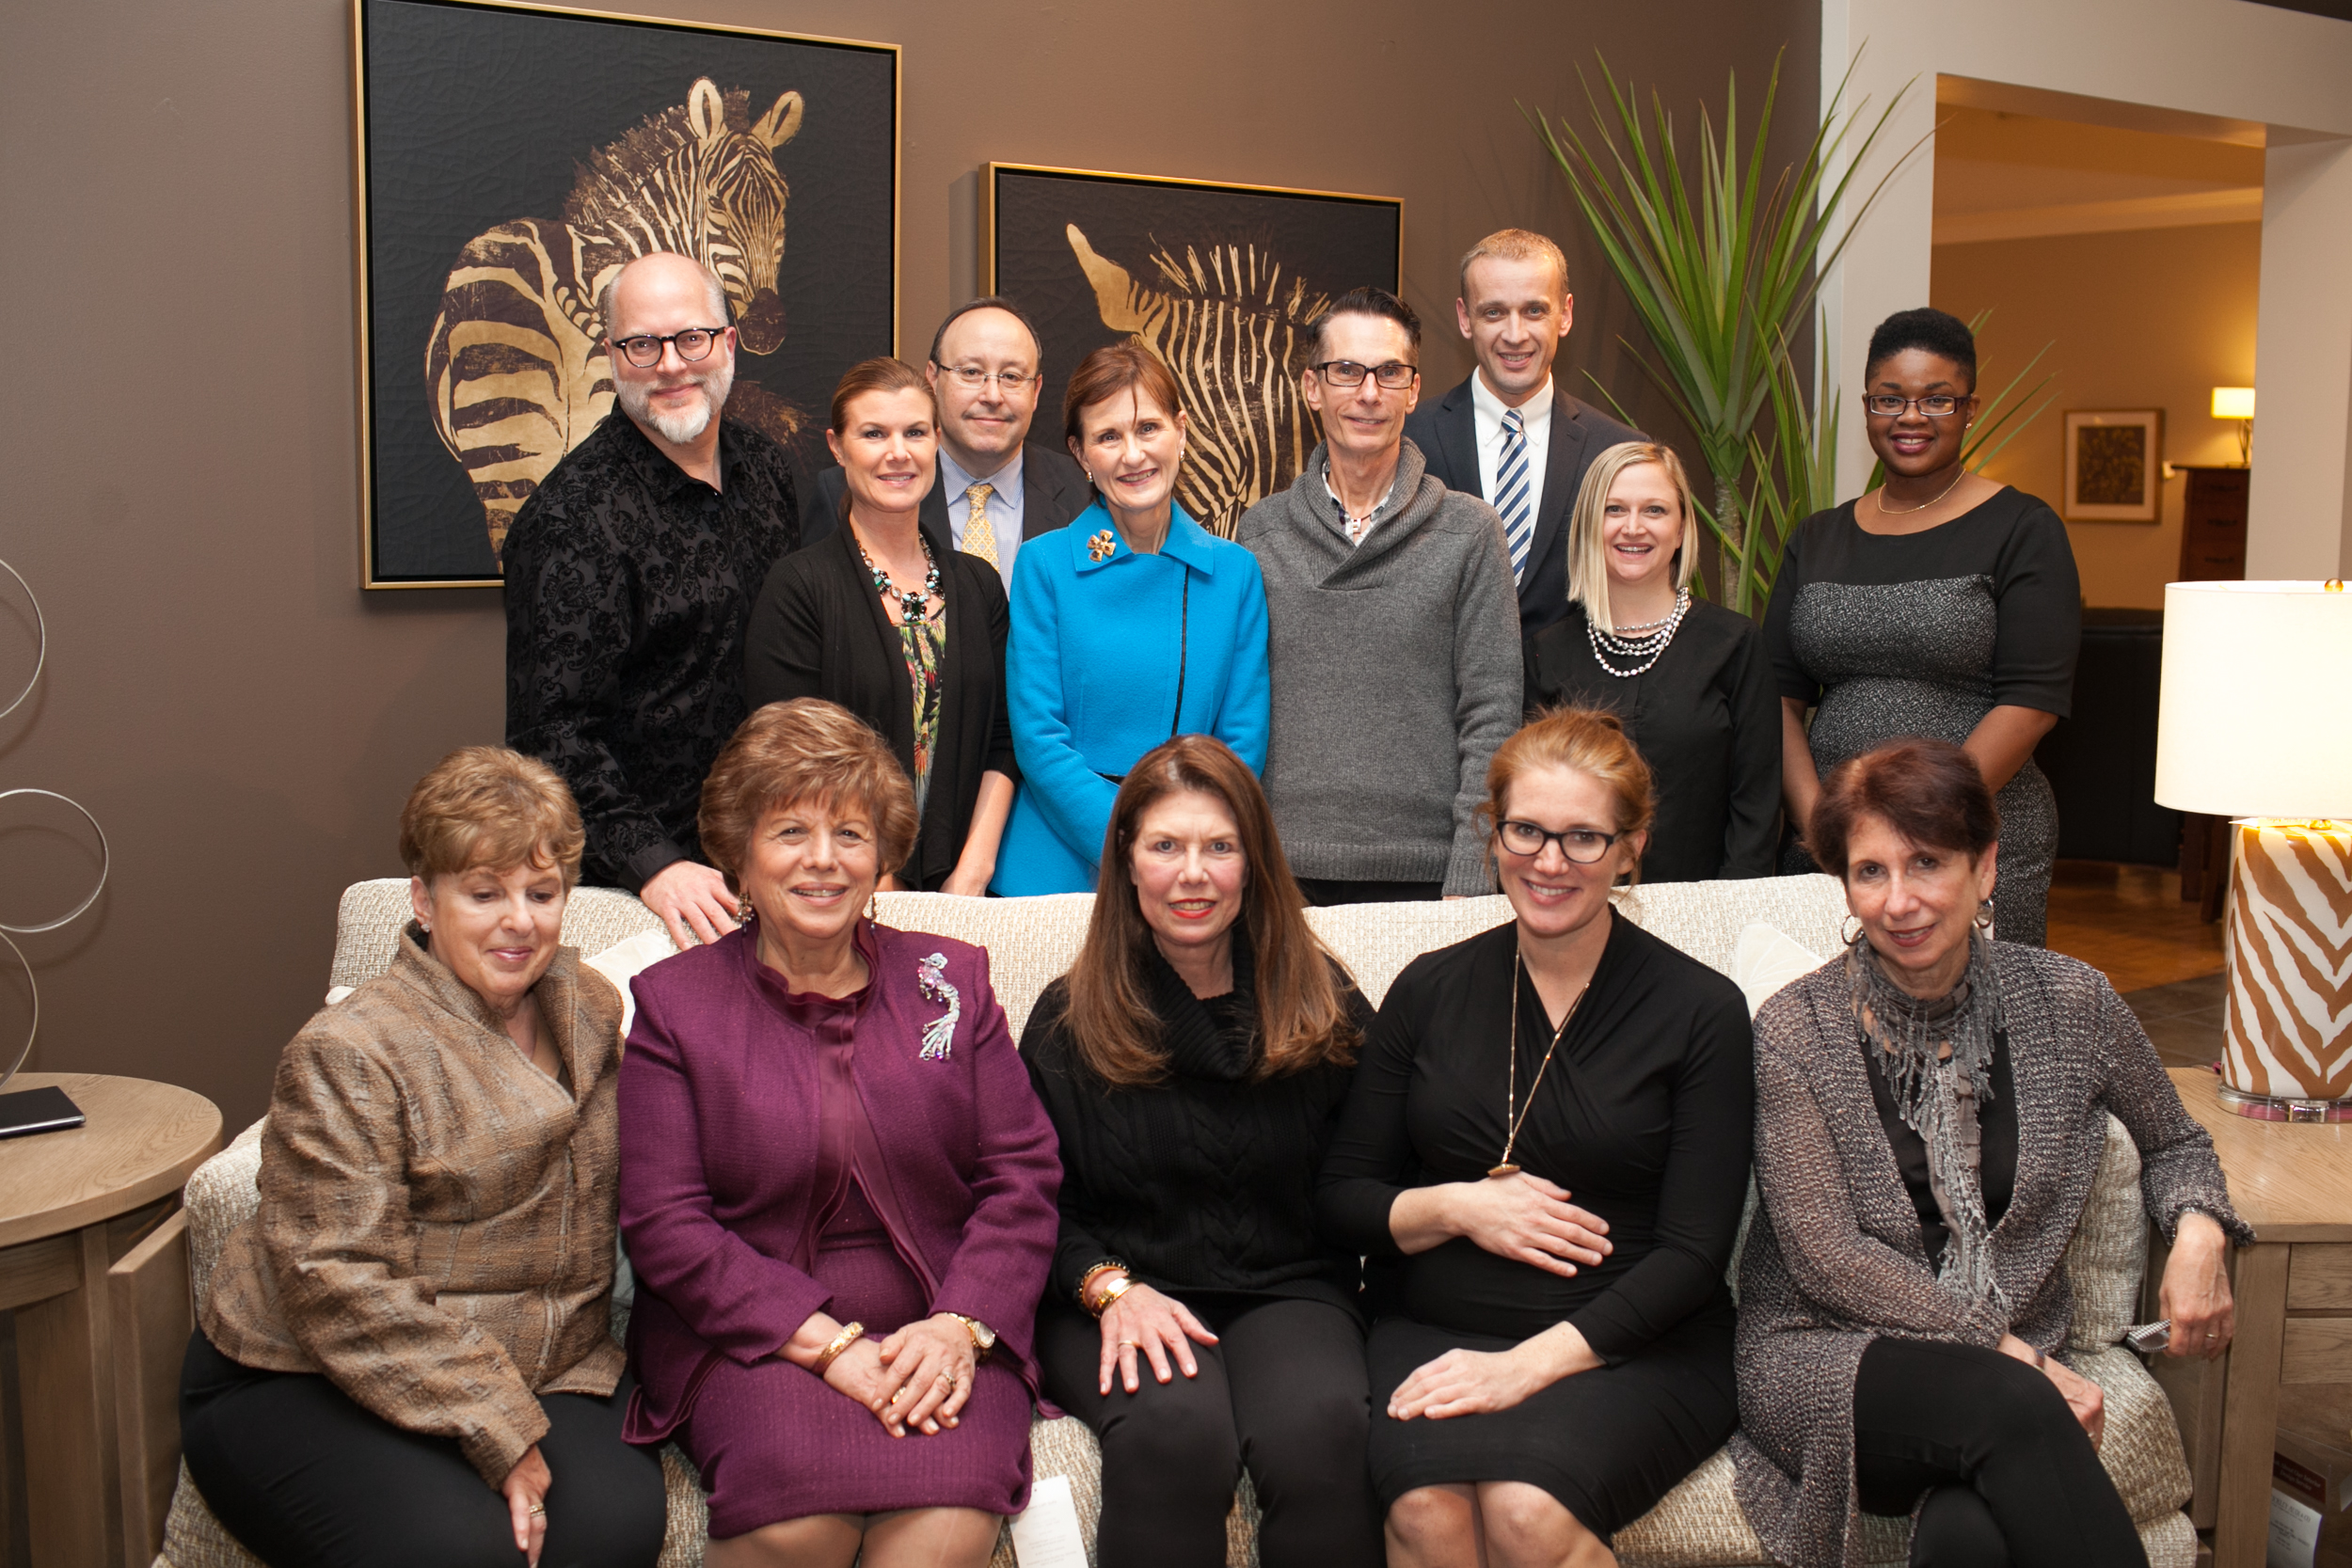 The Stickley team, with Sophie Donelson